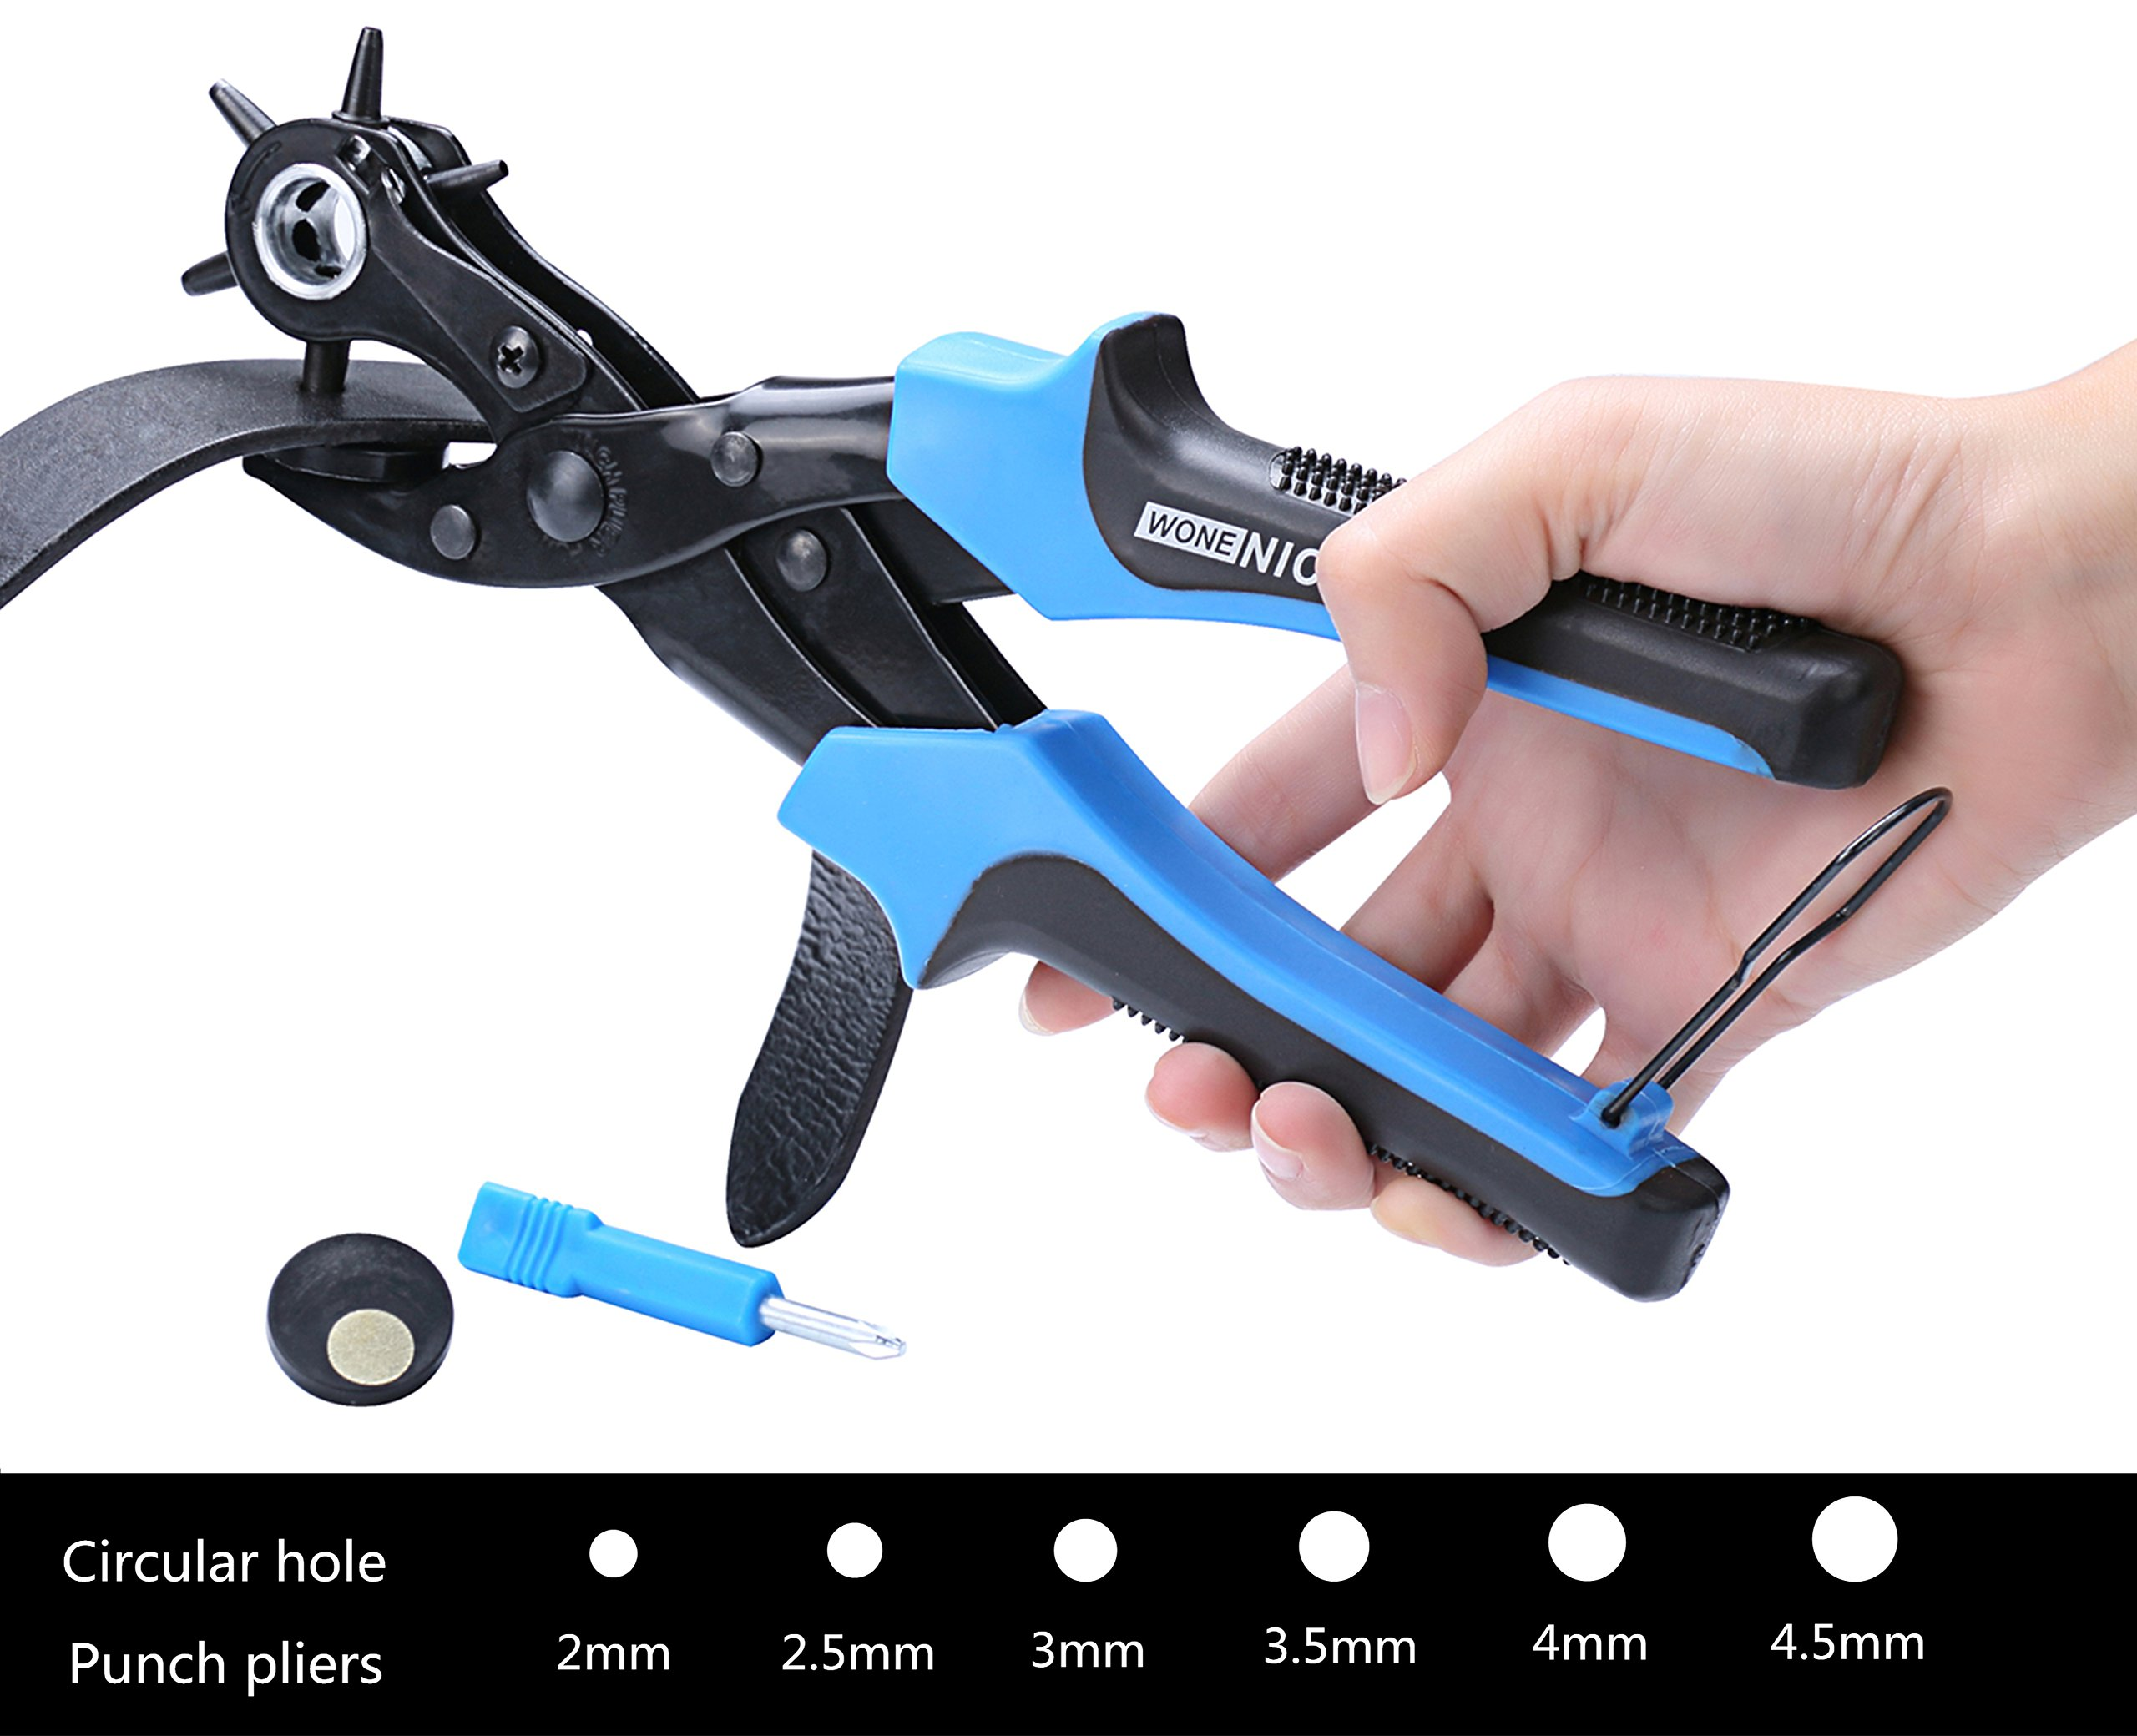 WoneNice Revolving Leather Hole Punches -2 Years Warranty -Professional Heavy Duty Belt Hole Puncher Tool - Easily Punches Perfect Round Holes in 2.0 mm- 4.5 mm